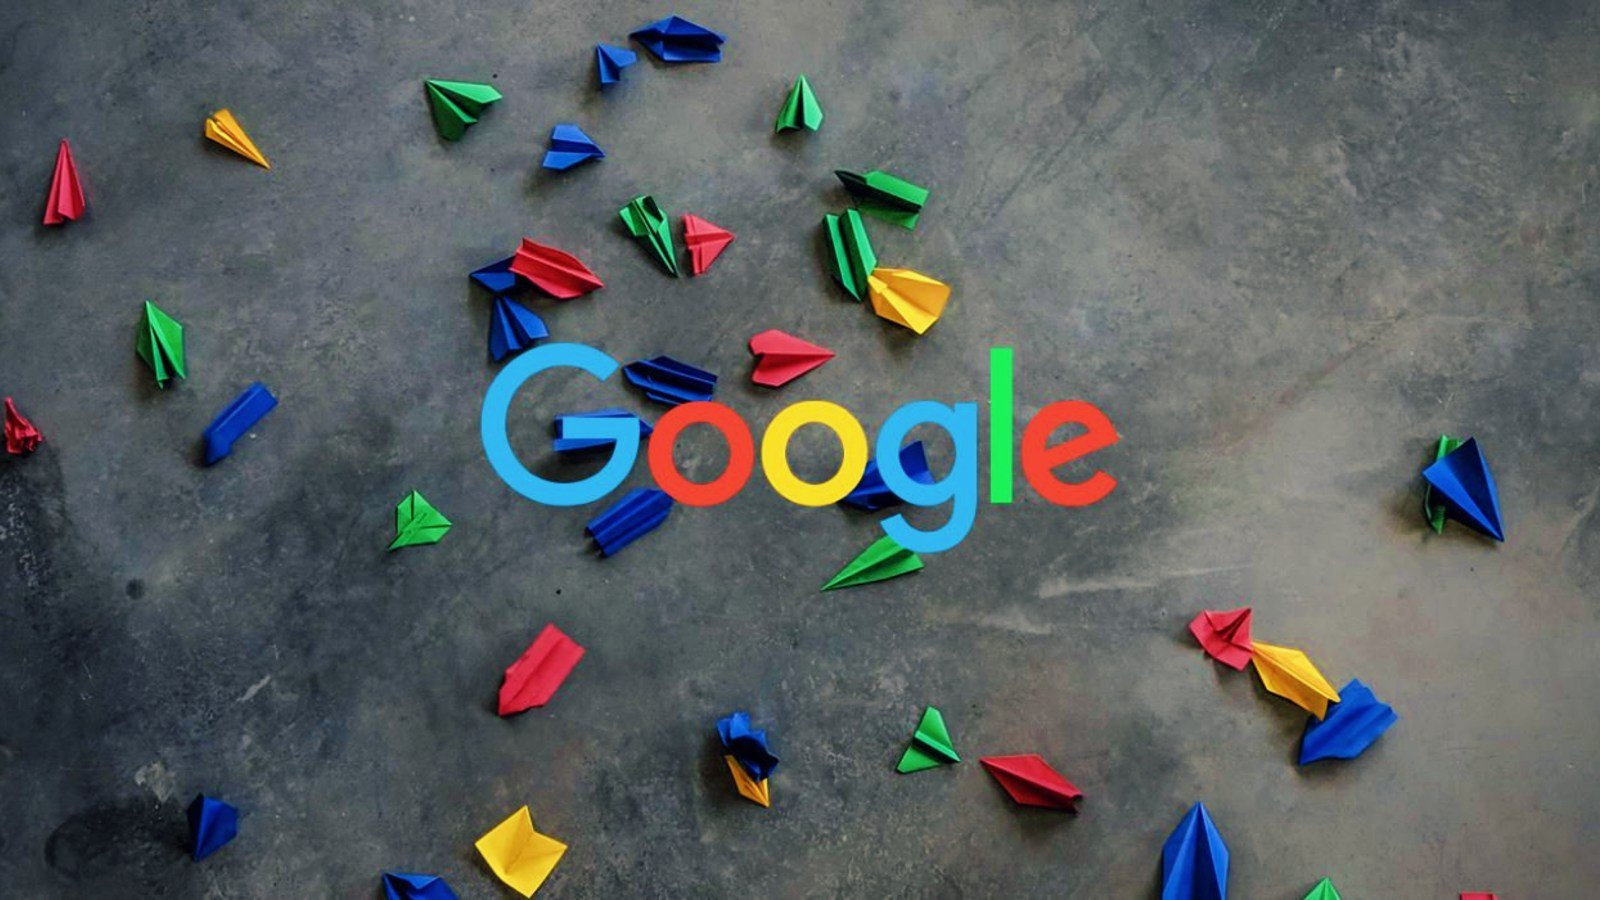 Google wants to enable multi-factor authentication by default